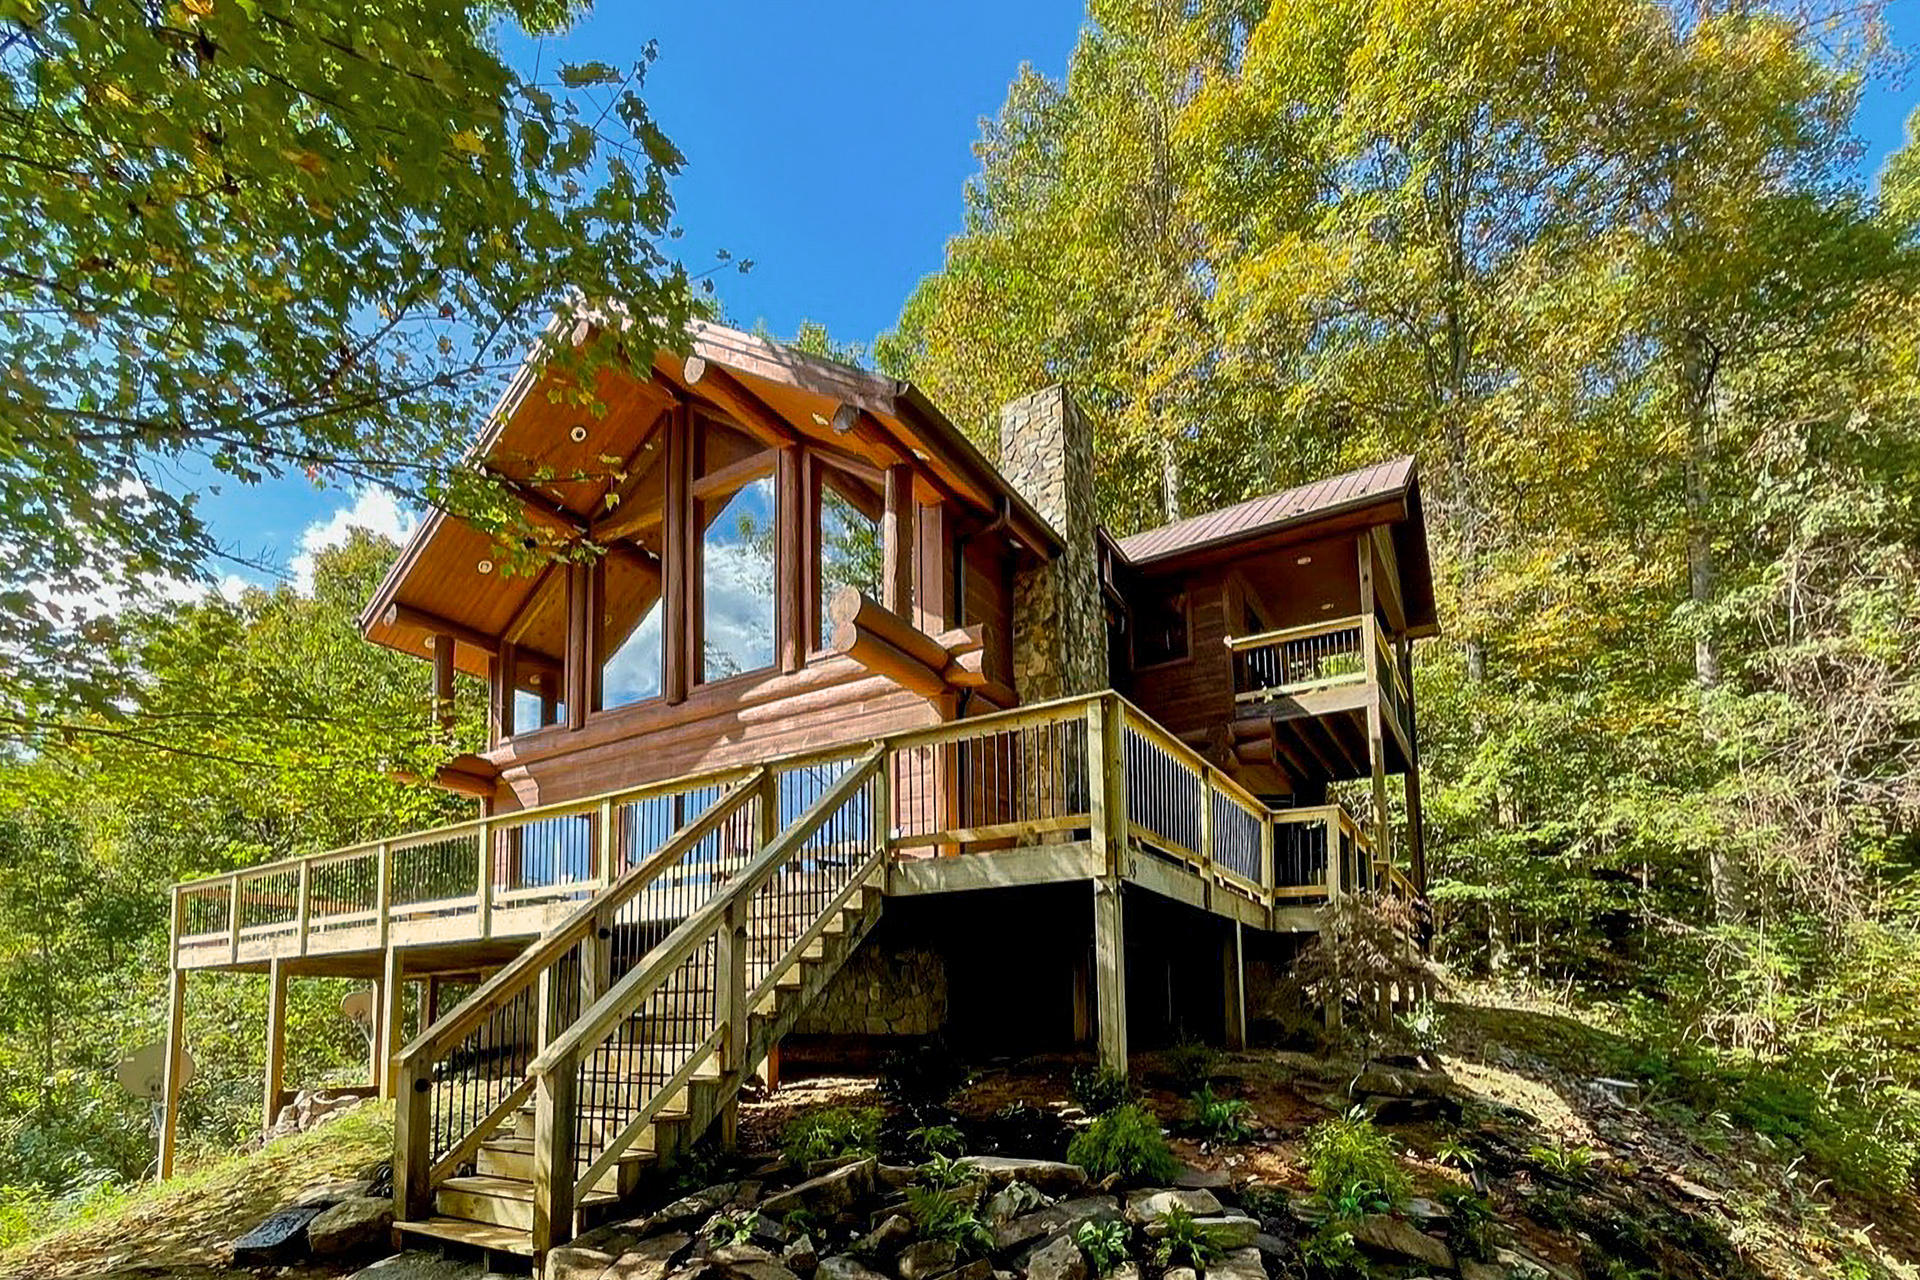 Cabin in the clouds vacation rental in nantahala nc Smoky mountain nc cabin rentals